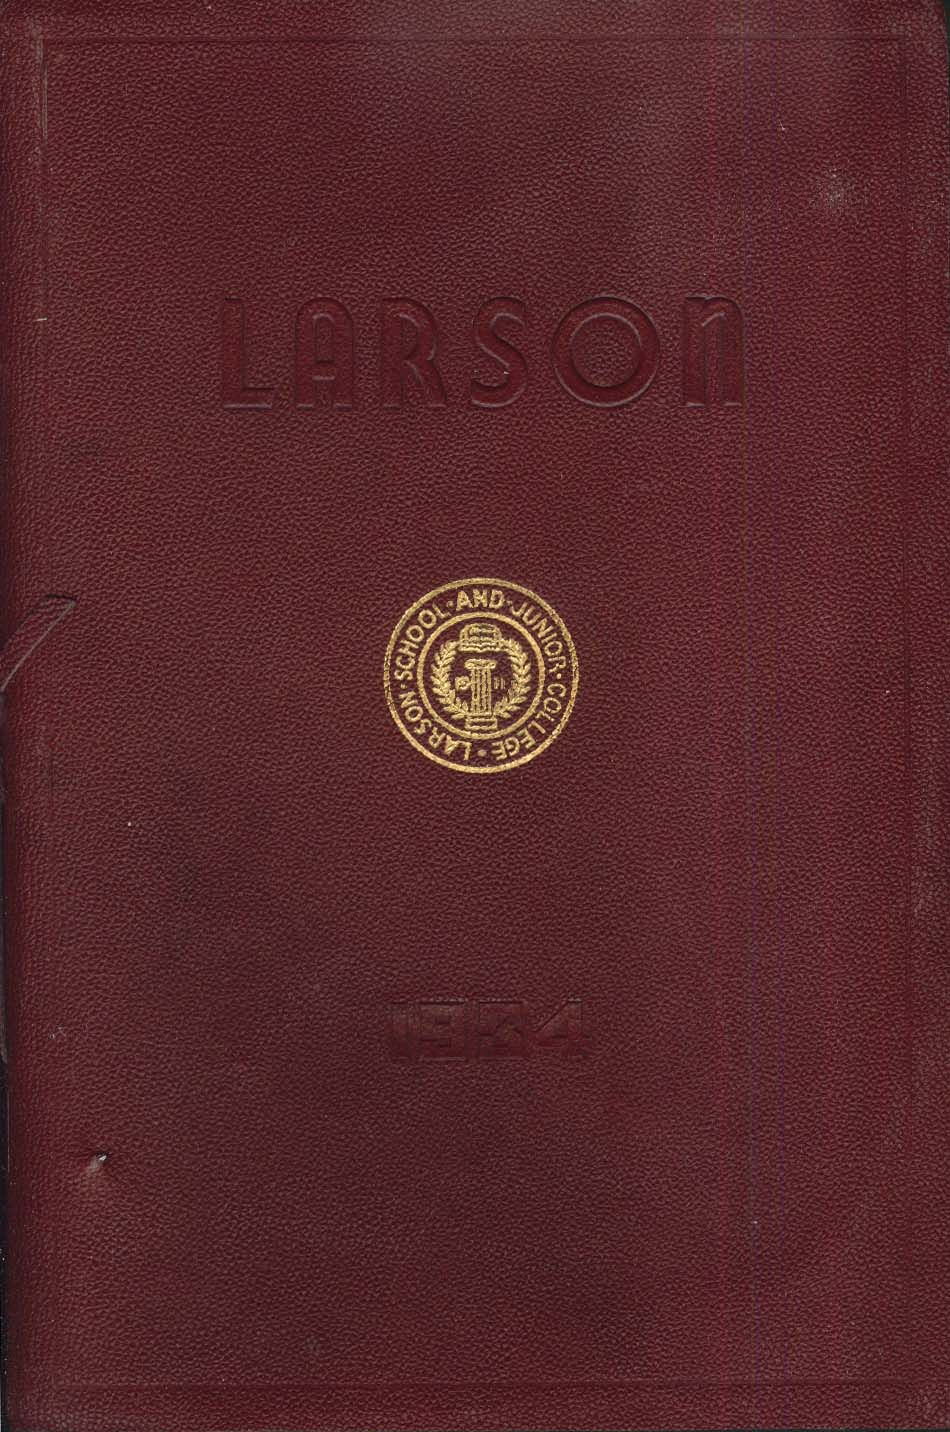 Larson School & Junior College New Haven Connecticut CT 1934 Yearbook